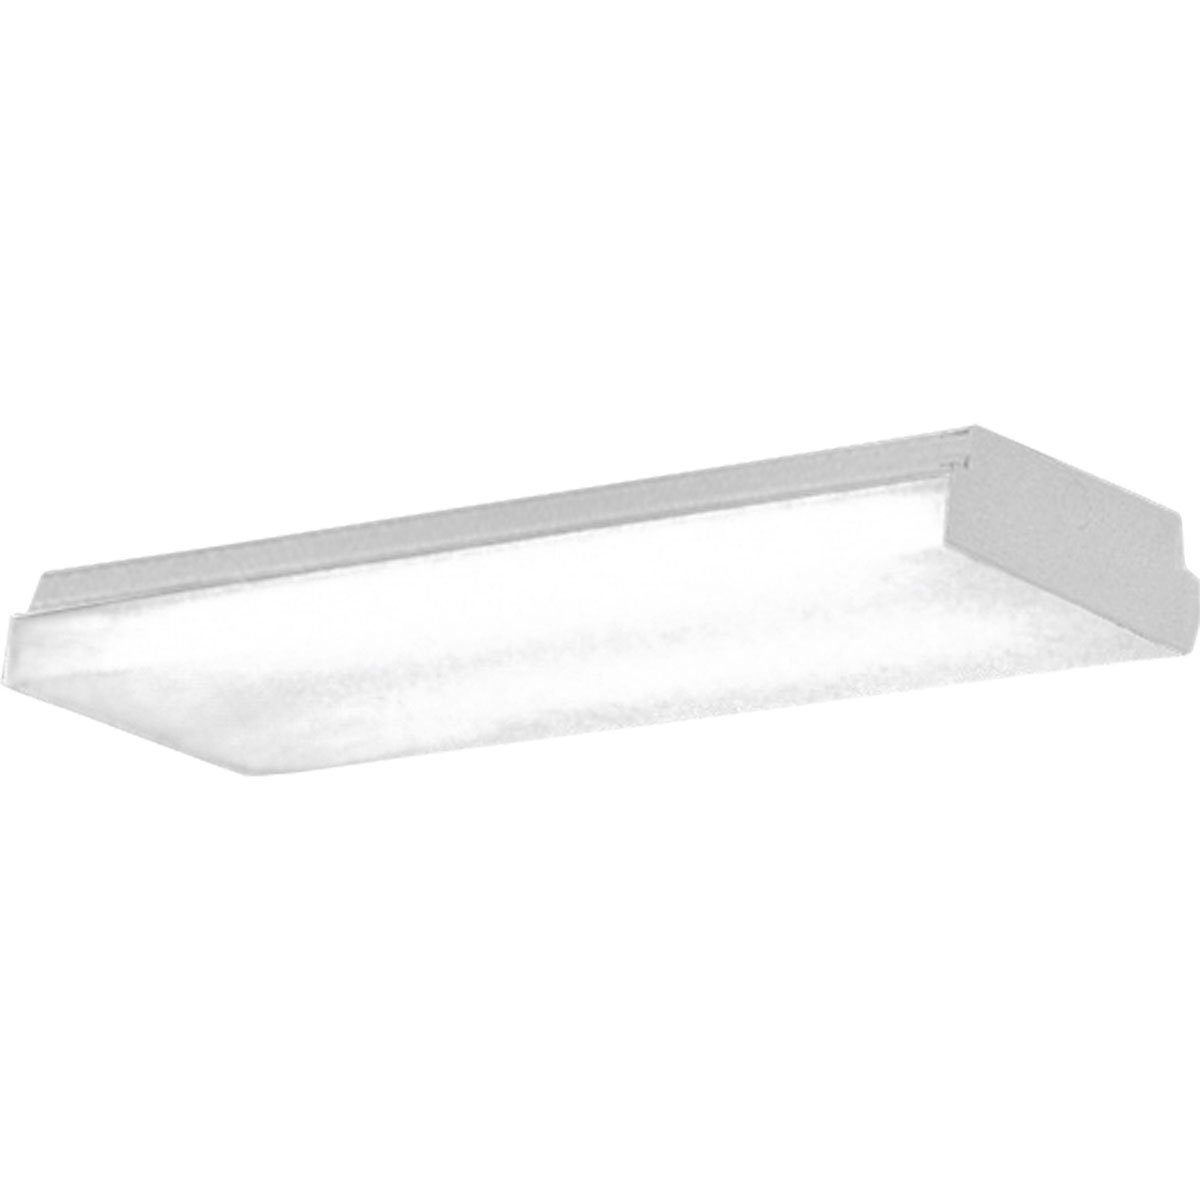 Progress Lighting P7183-30EB Wrap Around with Clear Extruded Acrylic Diffuser and Surface Mounted White Chassis Regressed within Trim, White